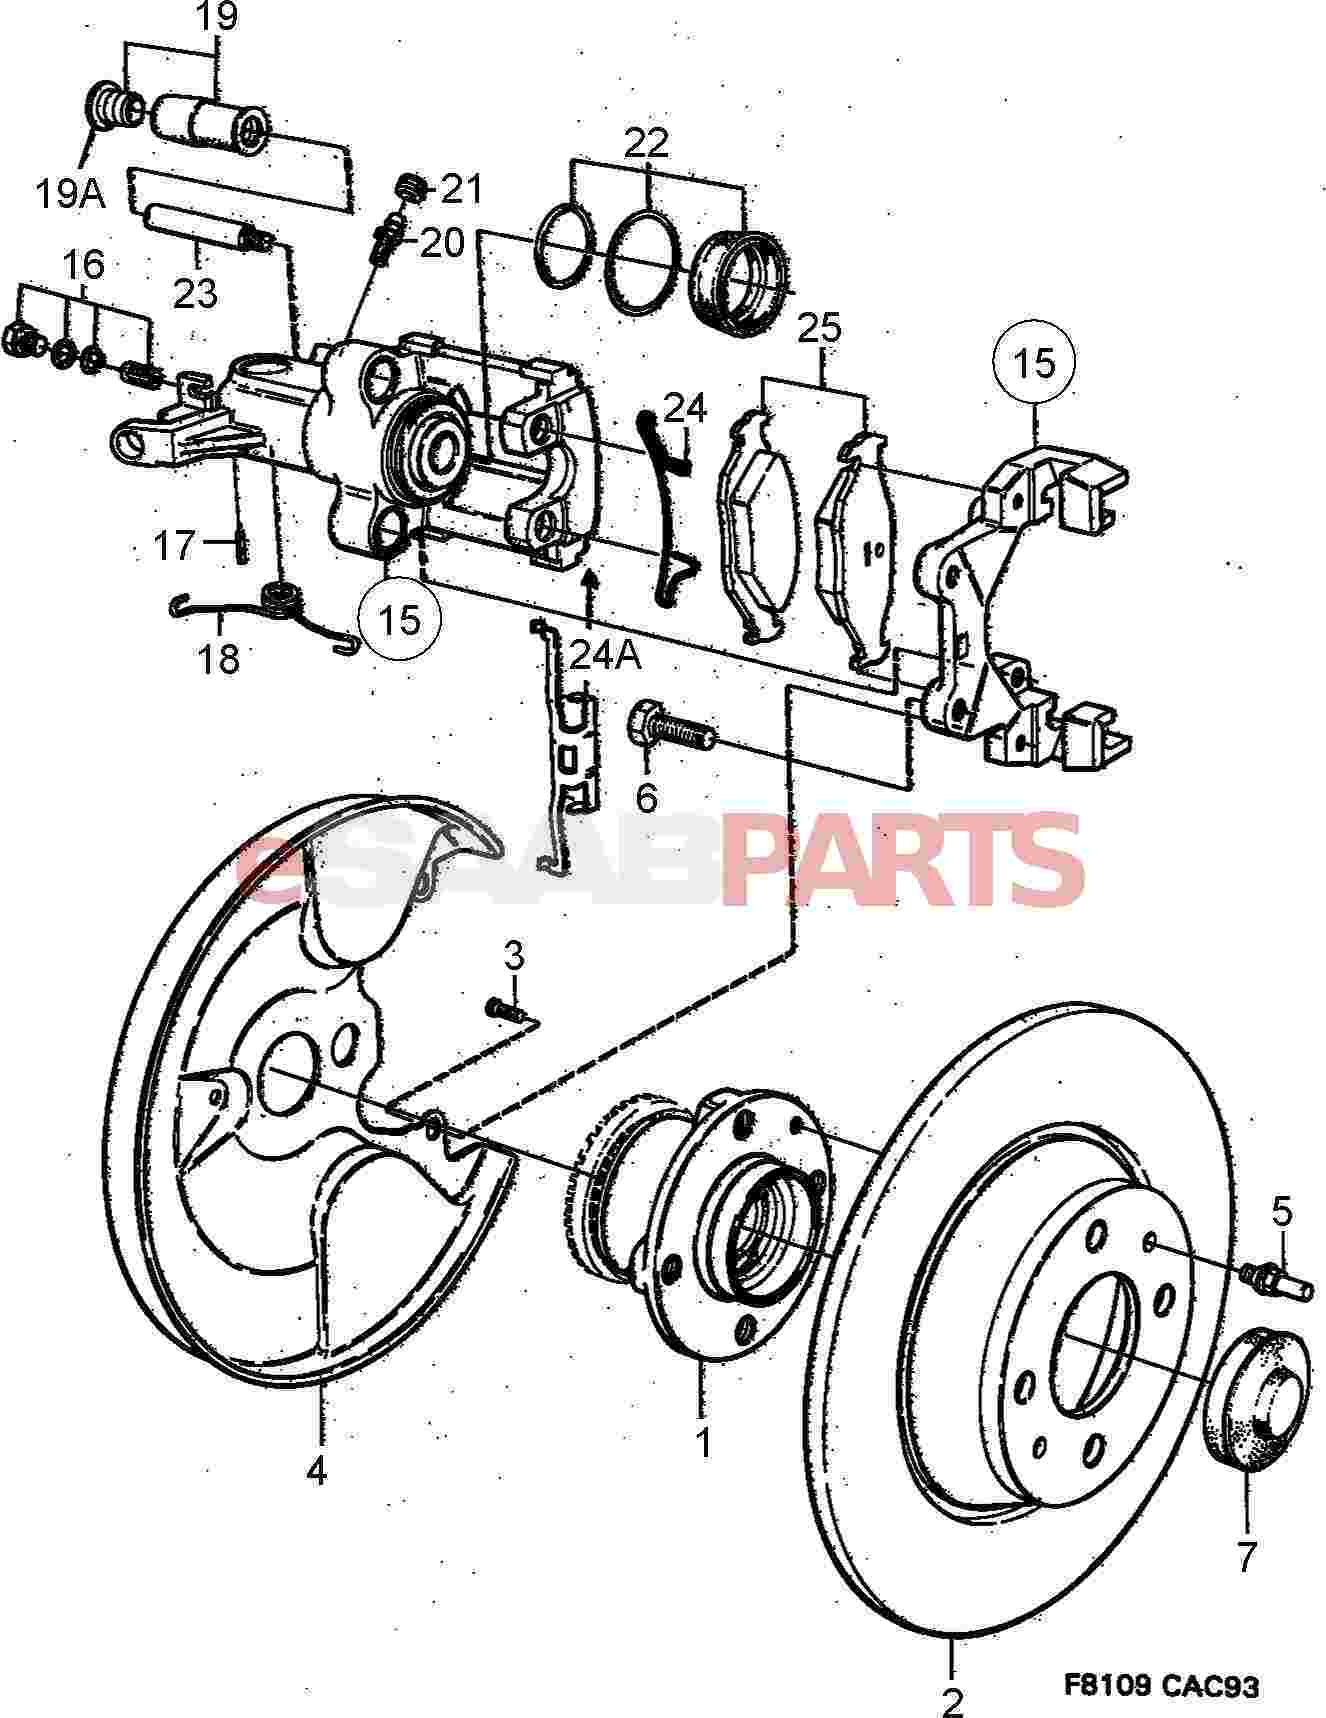 Mitsubishi Mirage Throttle Body Parts Diagram Mitsubishi